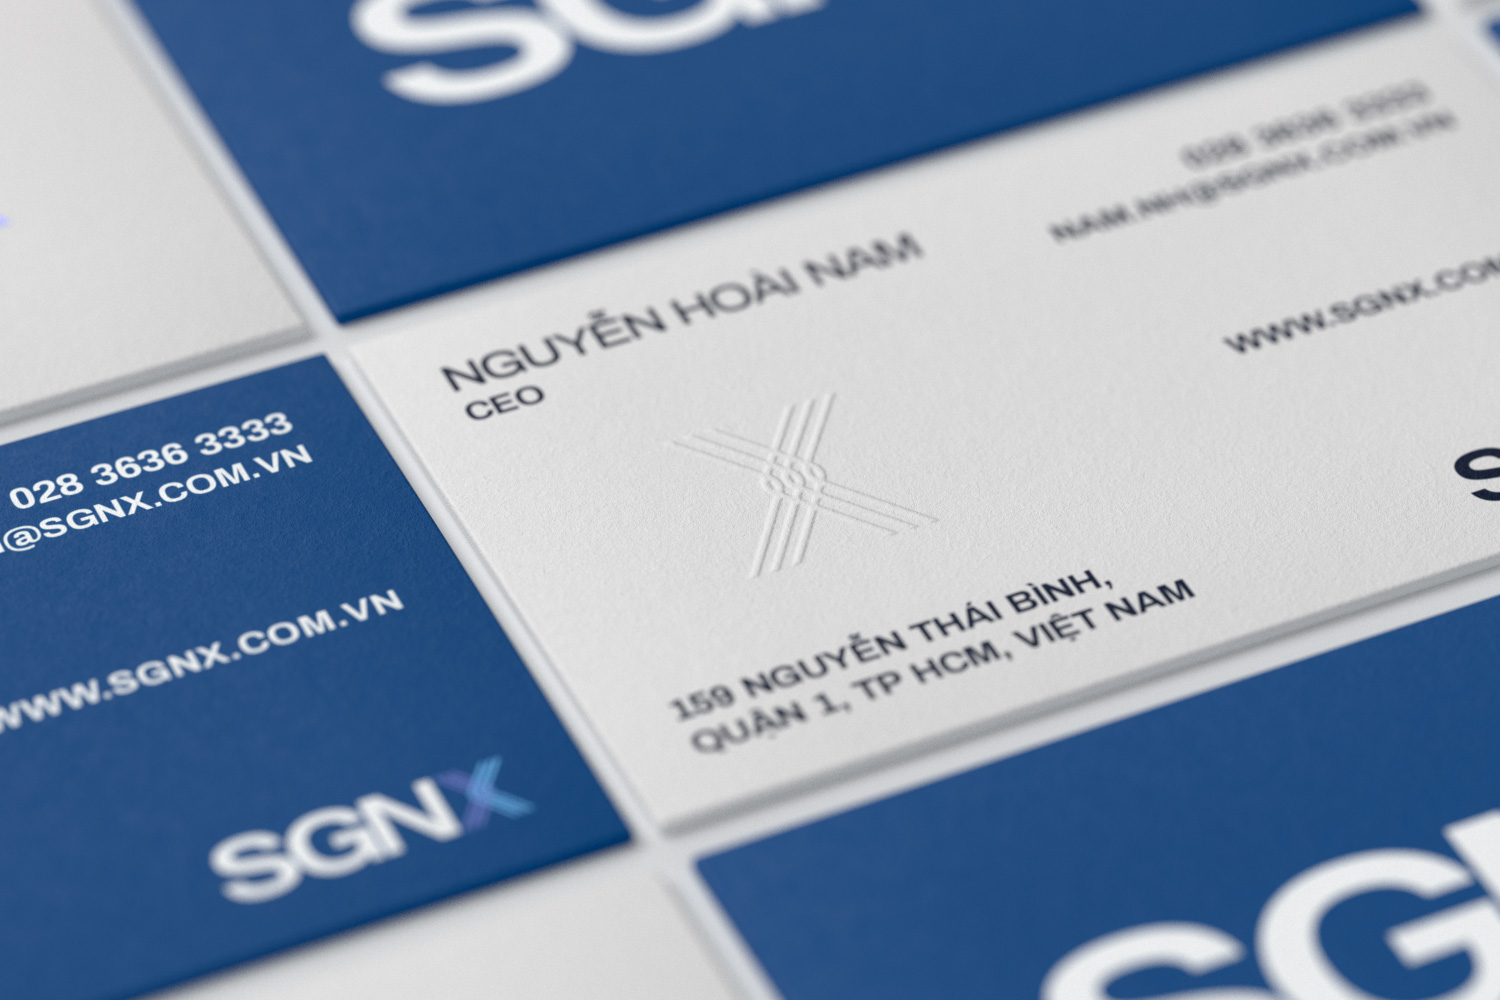 SGNX business card embossing detail